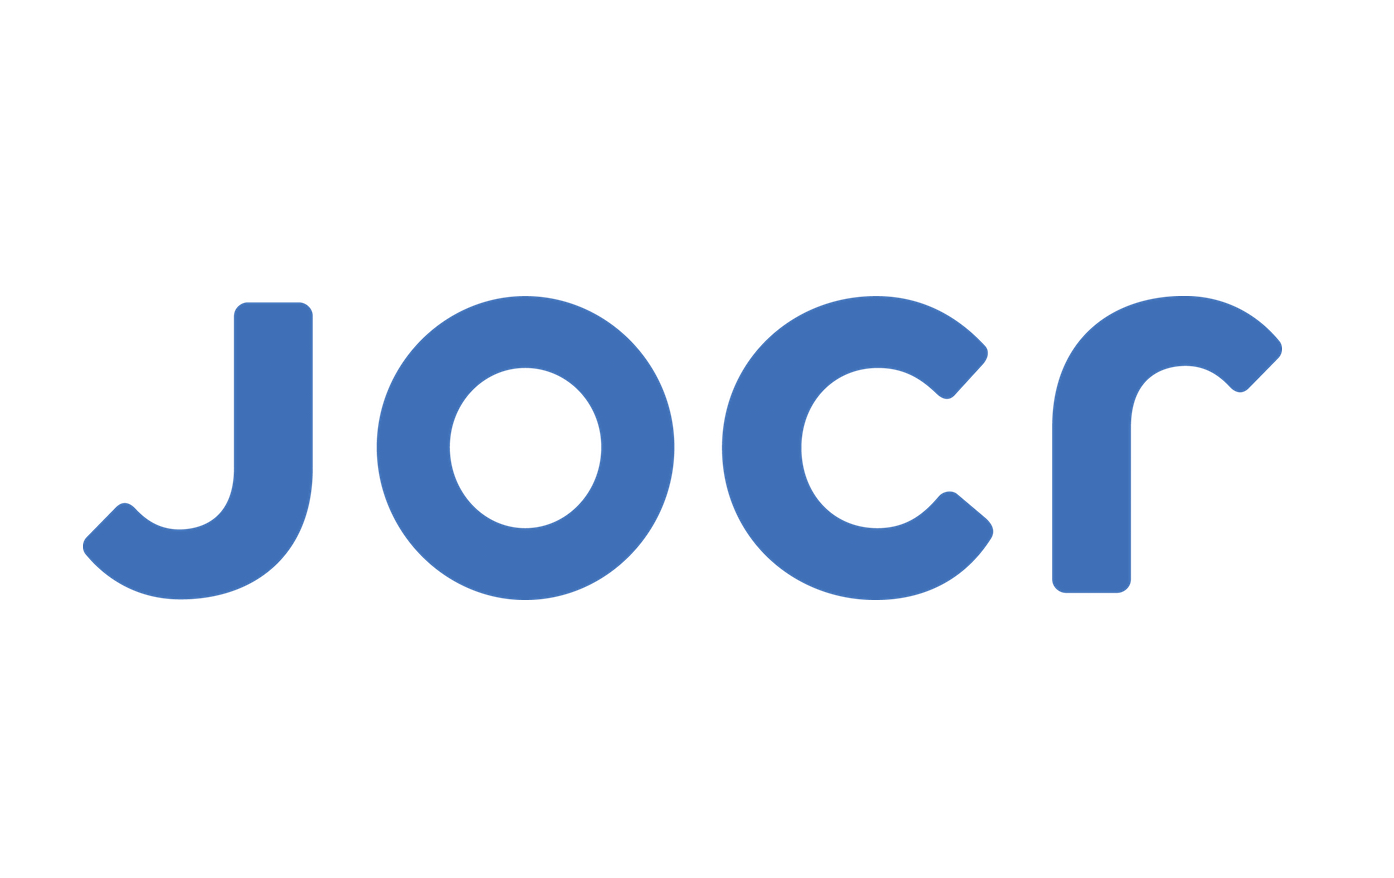 JOCR - Apple Product Support